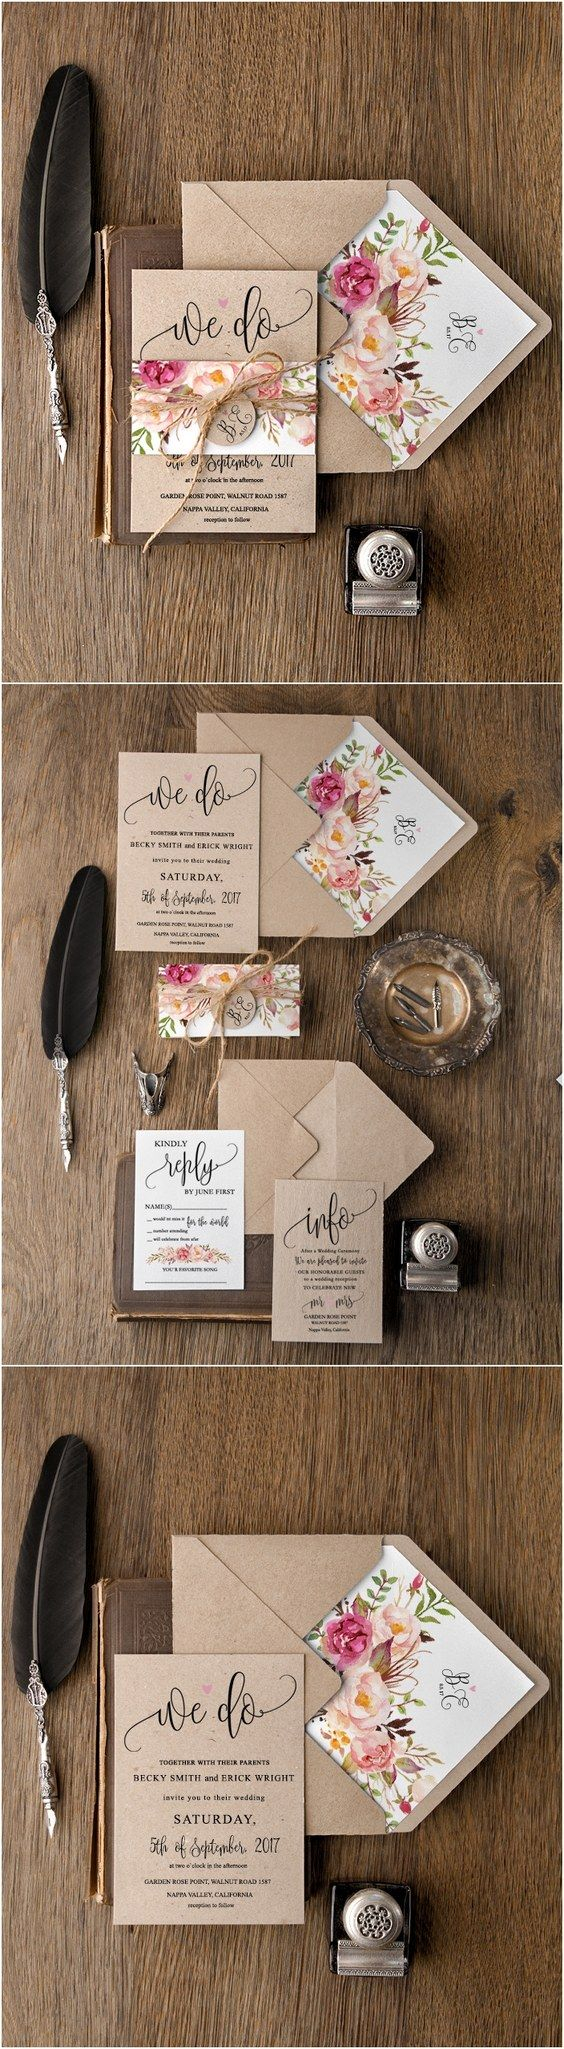 Country Rustic Wedding Invitations 30 Our Absolutely Favorite Rustic Wedding Invitations Deer Pearl